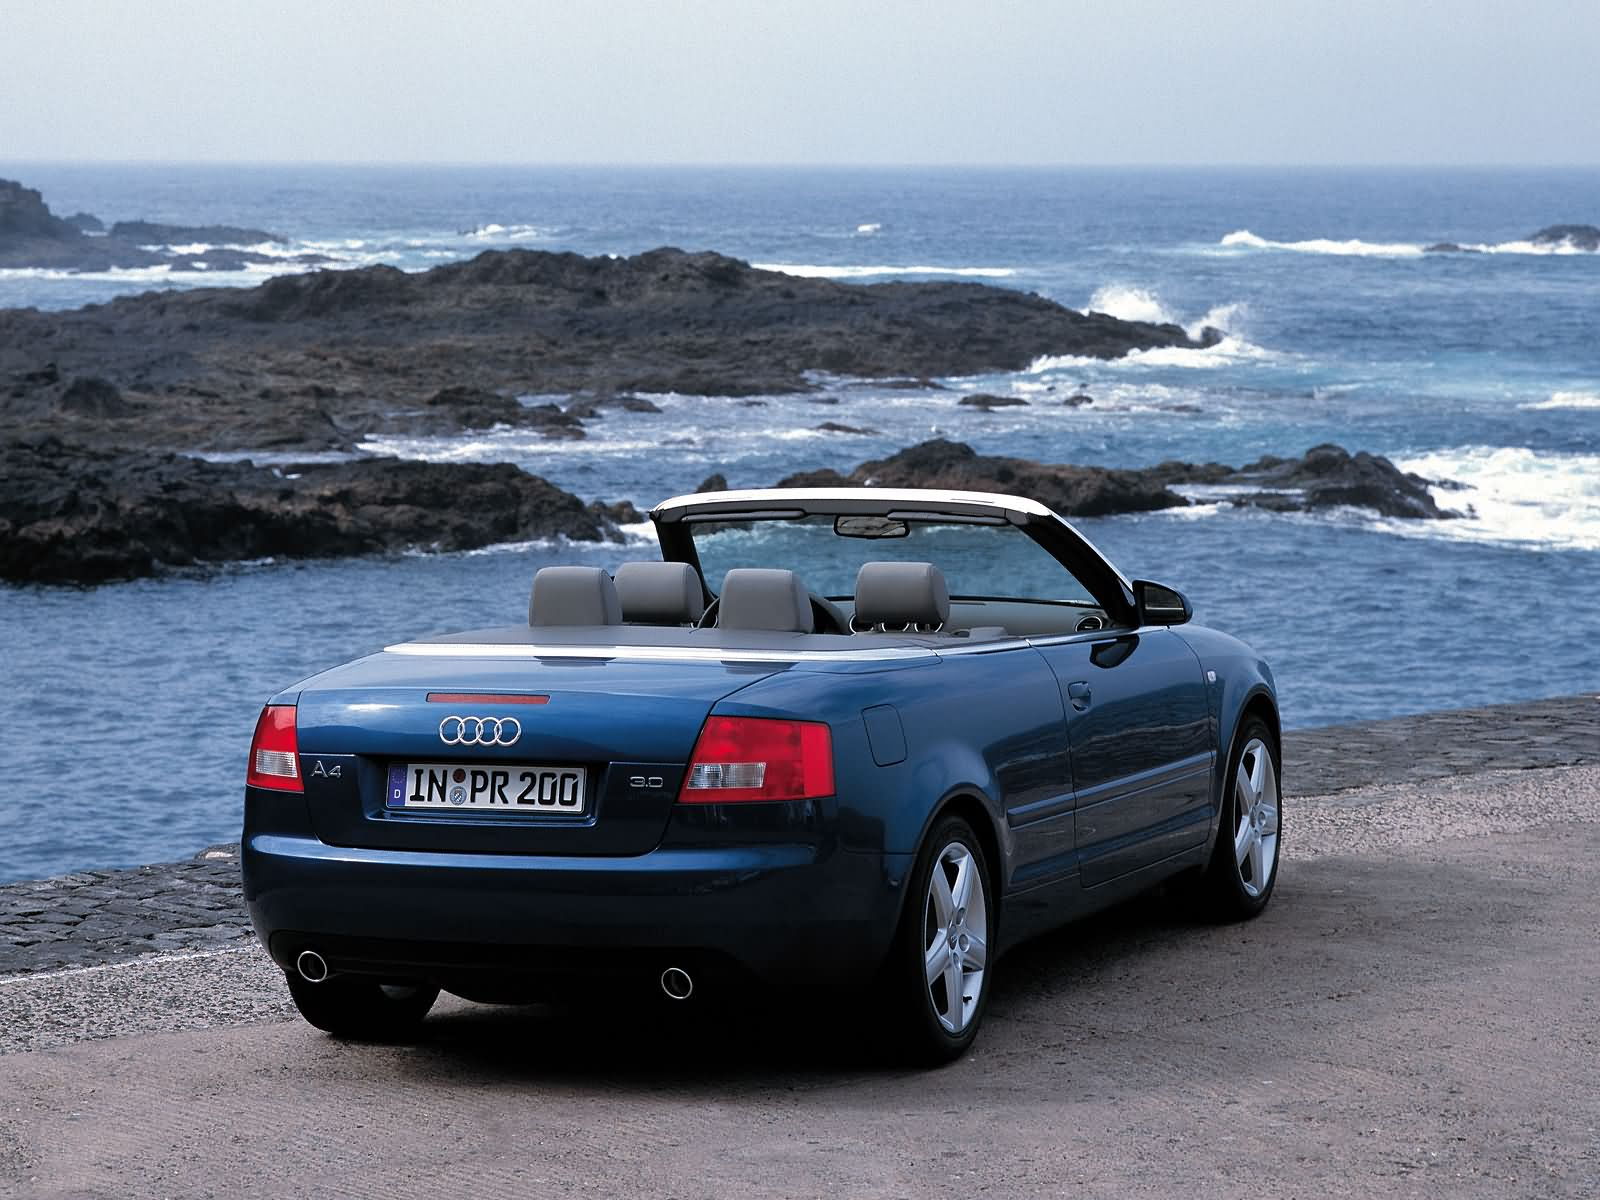 audi a4 cabriolet photos photogallery with 37 pics. Black Bedroom Furniture Sets. Home Design Ideas